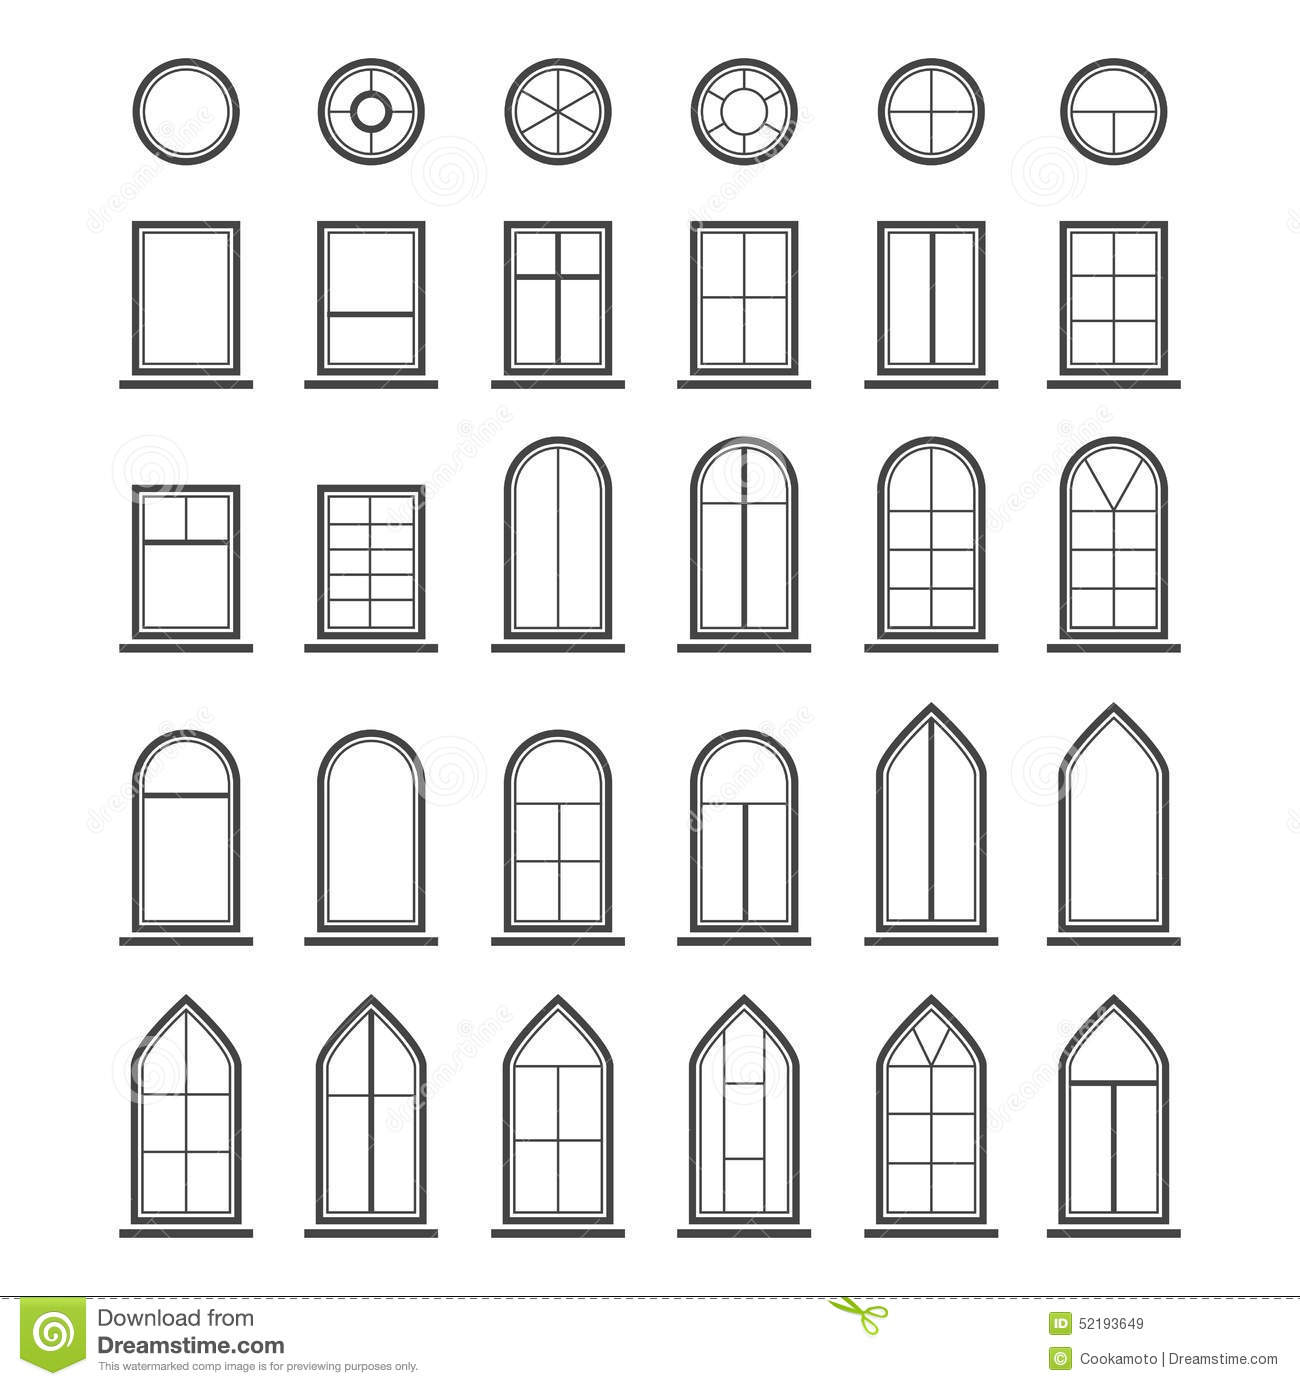 Types of residential windows - Different Types Of Windows Eps10 Royalty Free Stock Images